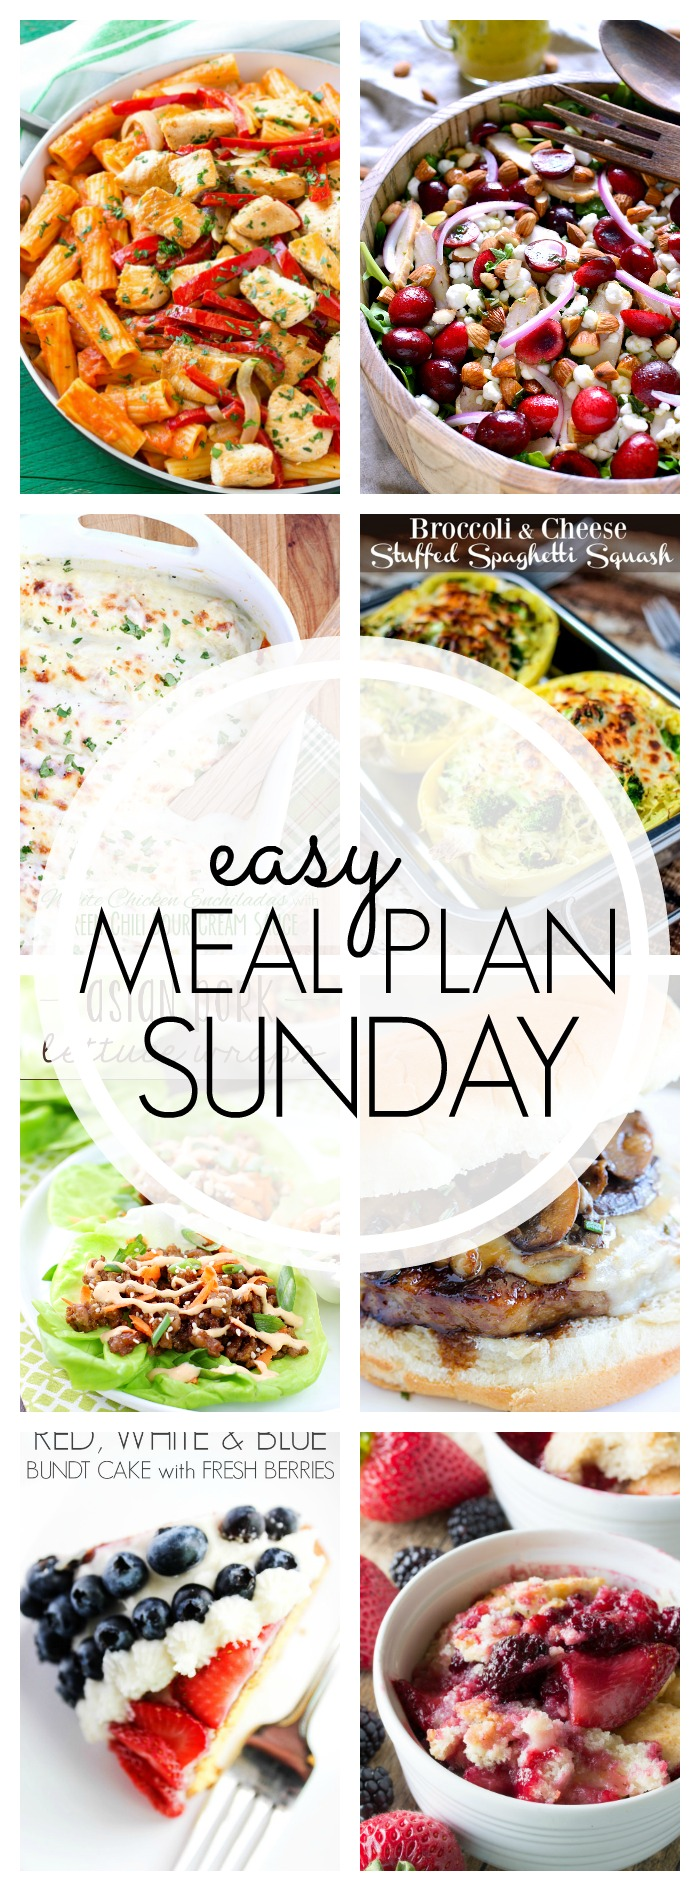 Easy Meal Plan Sunday #51